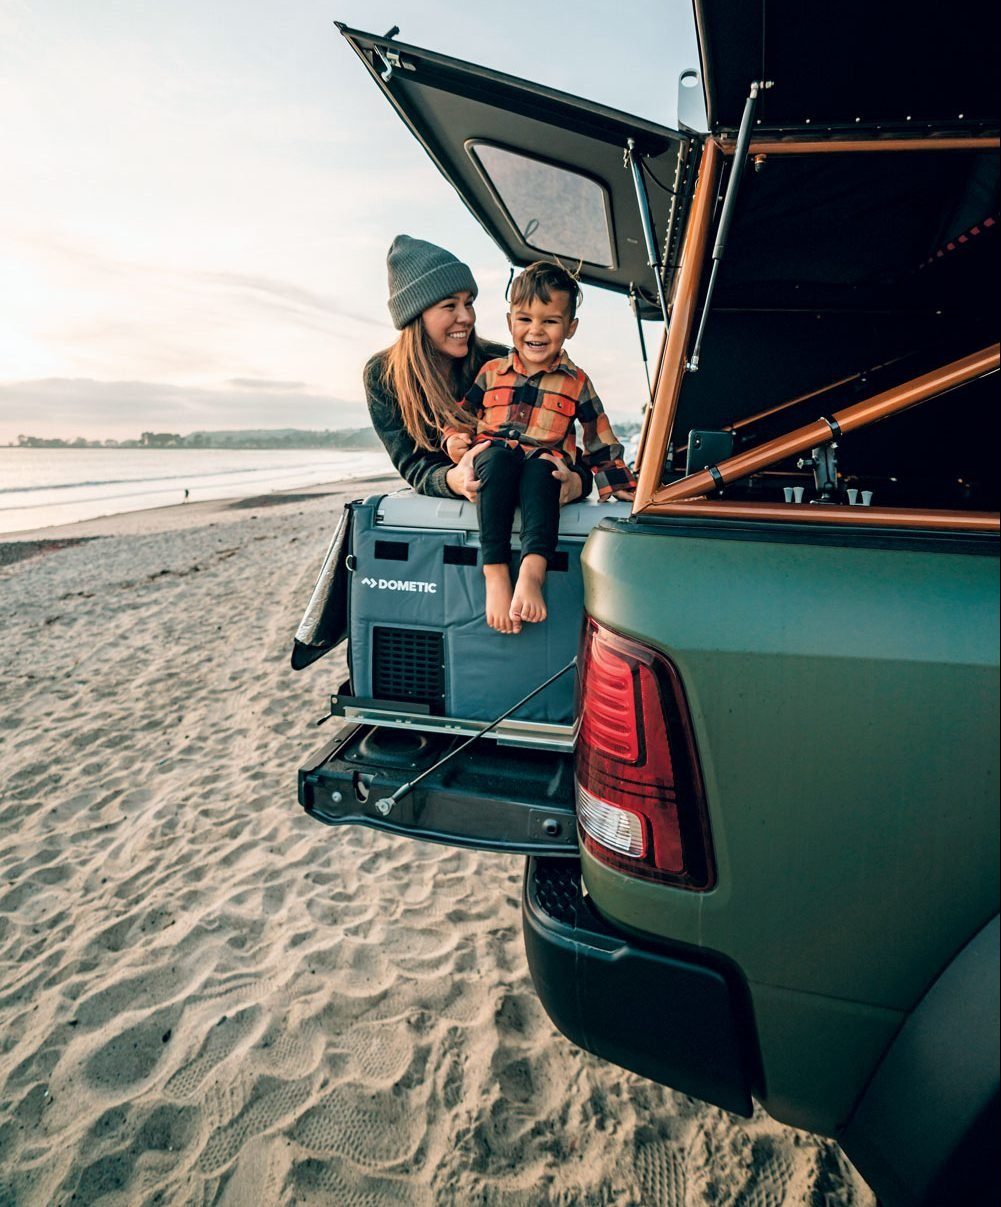 Mother and son on the tailgate of the AEV Prospector XL at the beach